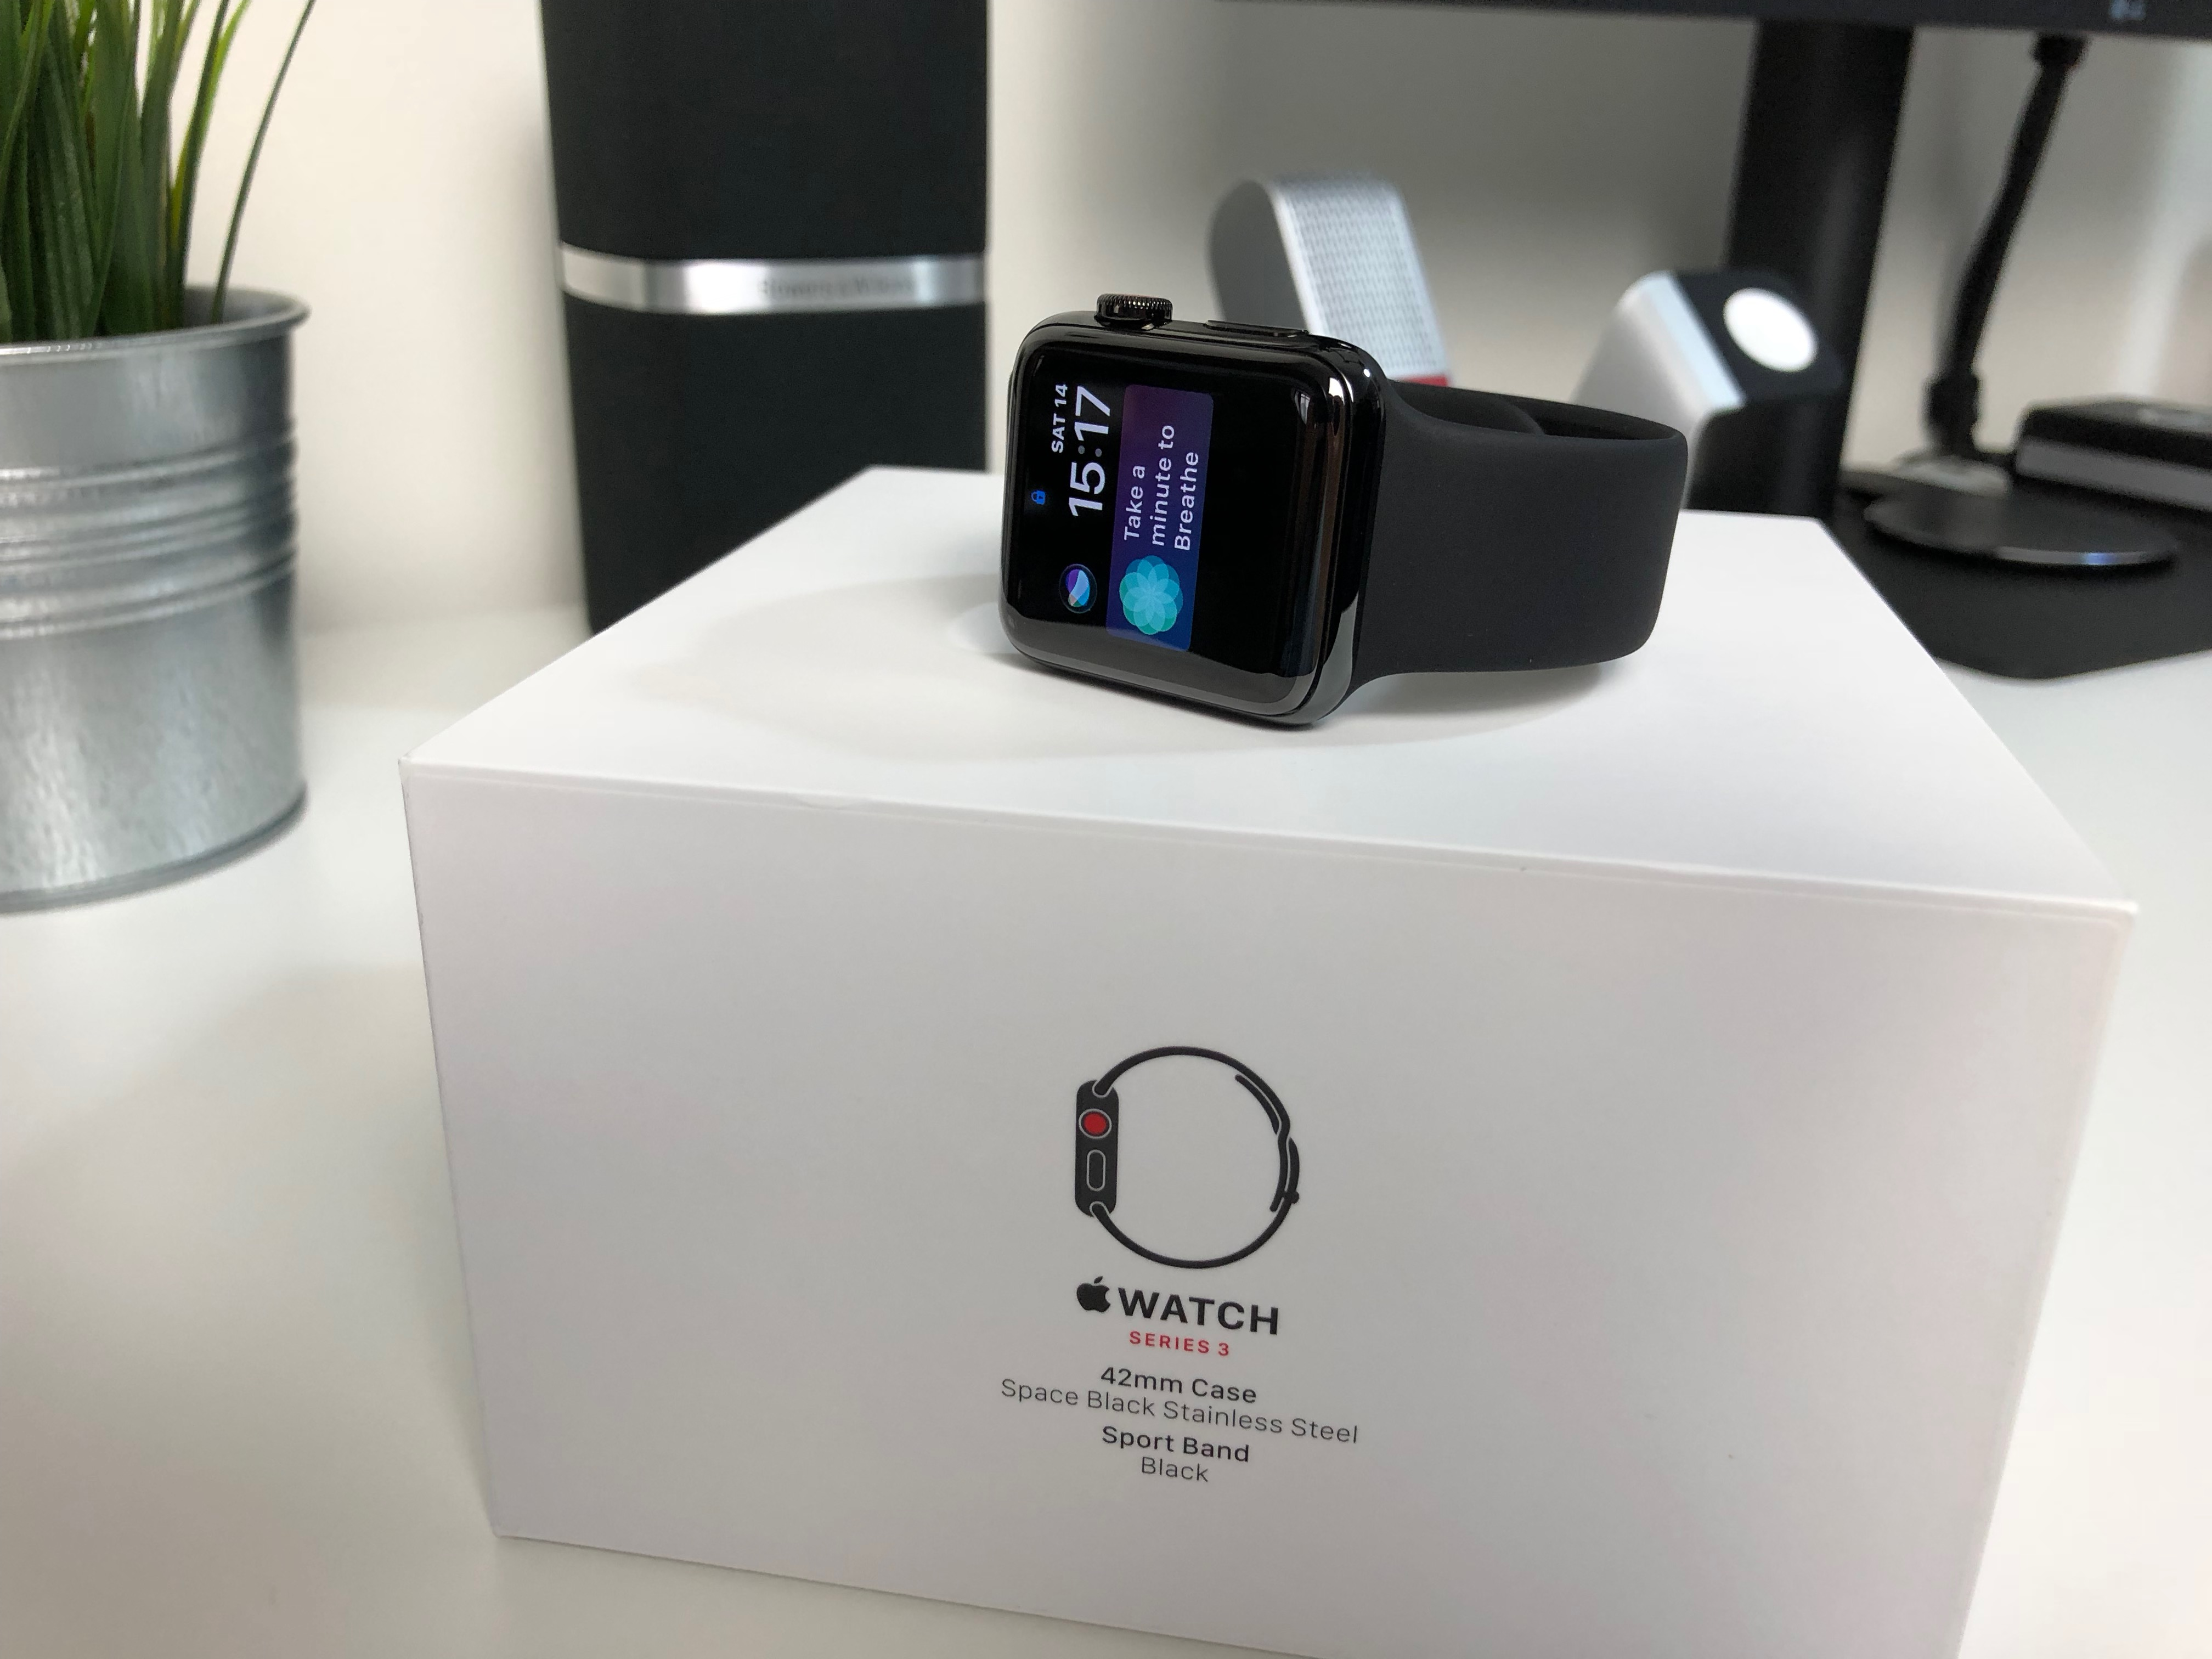 new arrival a7a50 b3ce2 Apple Watch Series 3 – Stainless Steel Space Black | RUNNING ...